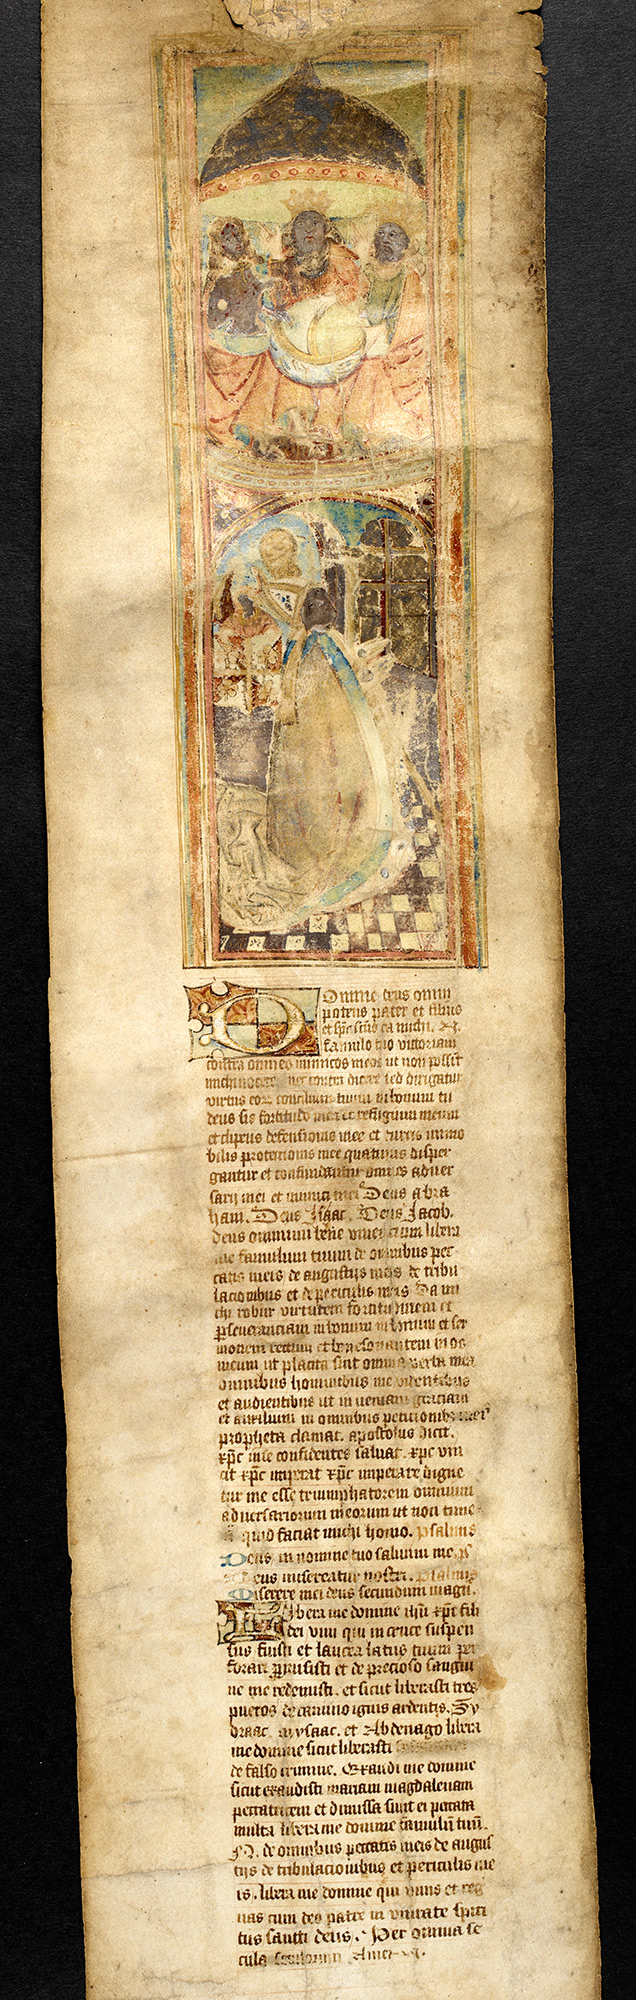 Henry VIII prayer scroll